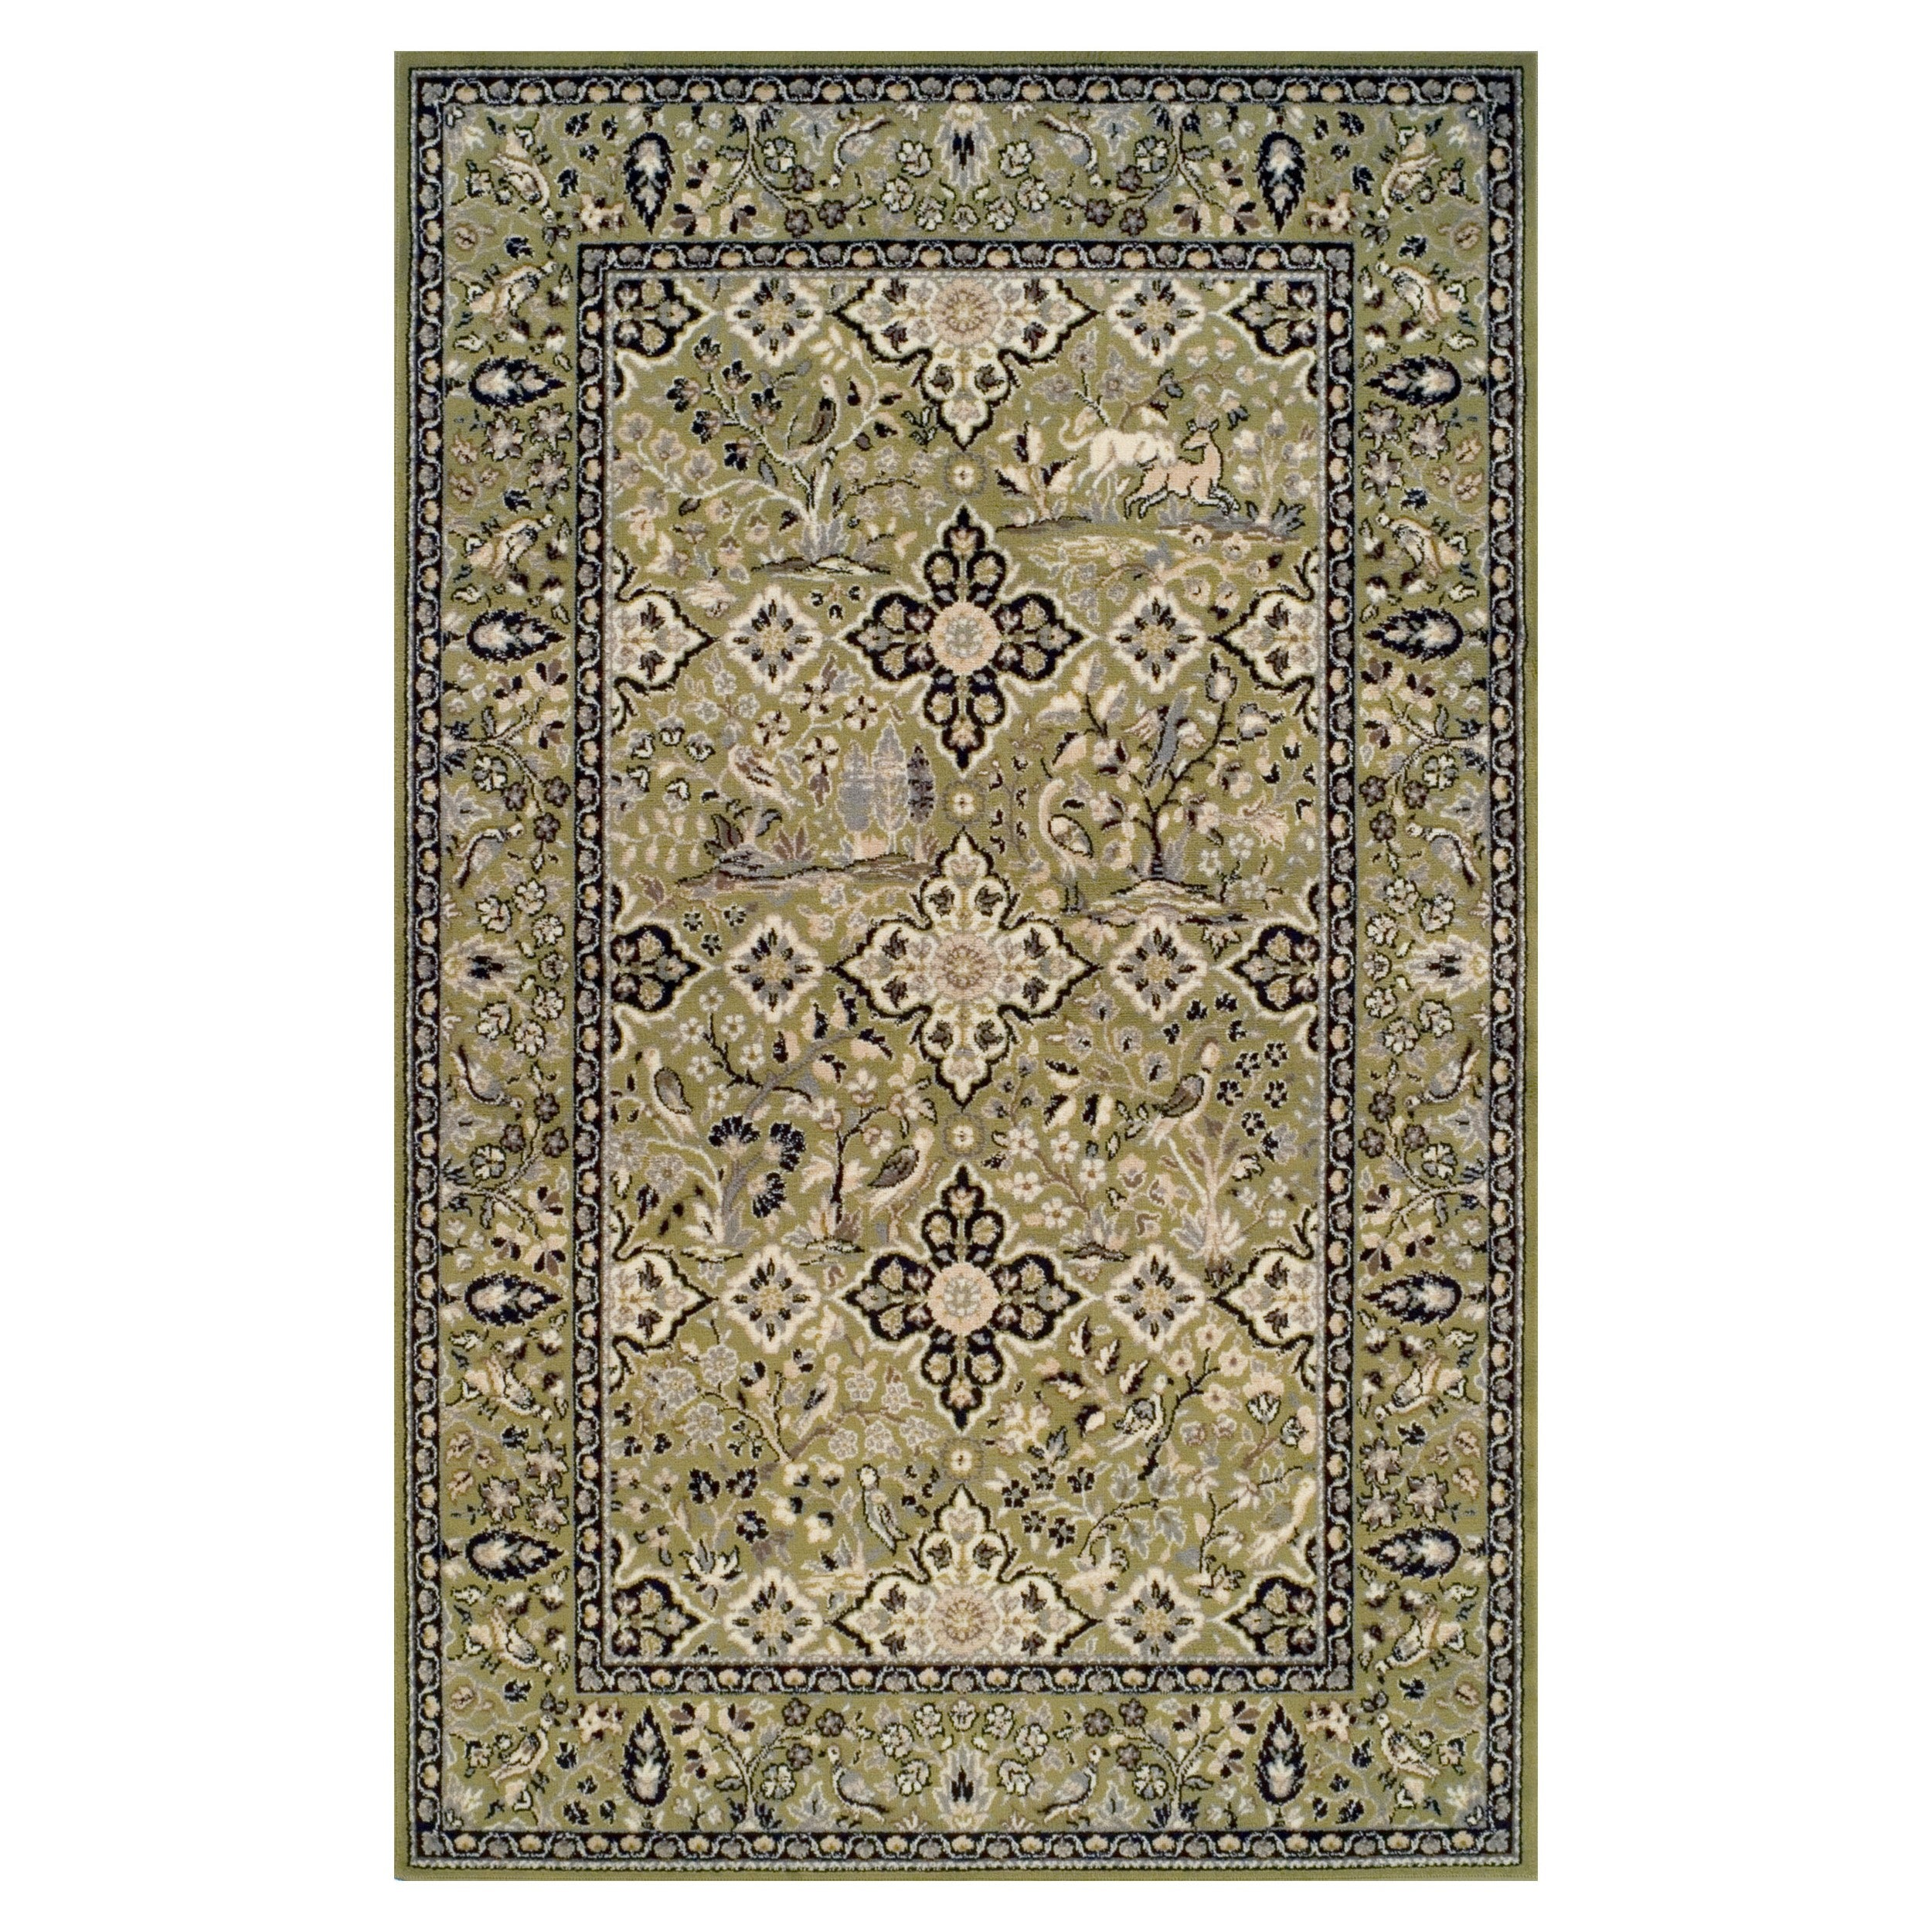 Superior Designer Radcliffe Collection Area Rug